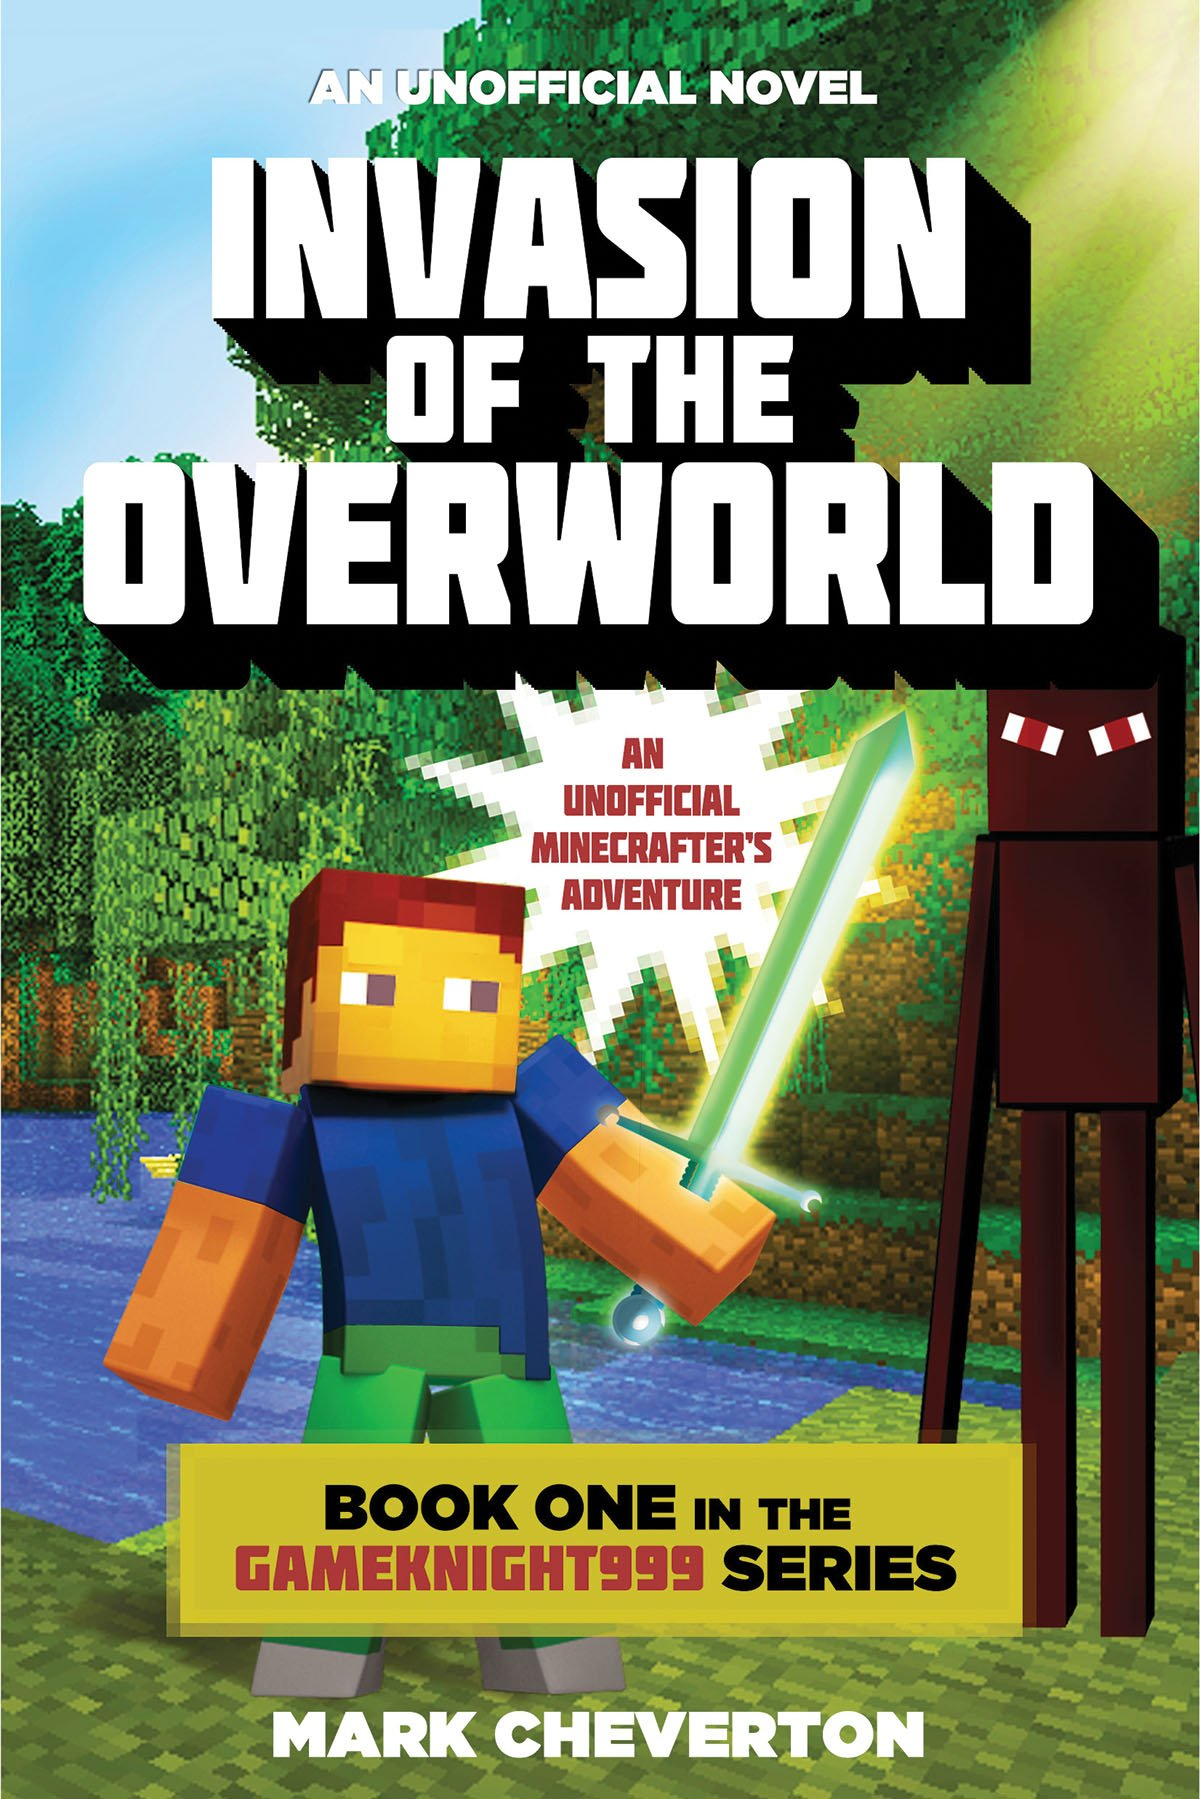 Invasion Overworld Gameknight999 Unofficial Minecrafters product image